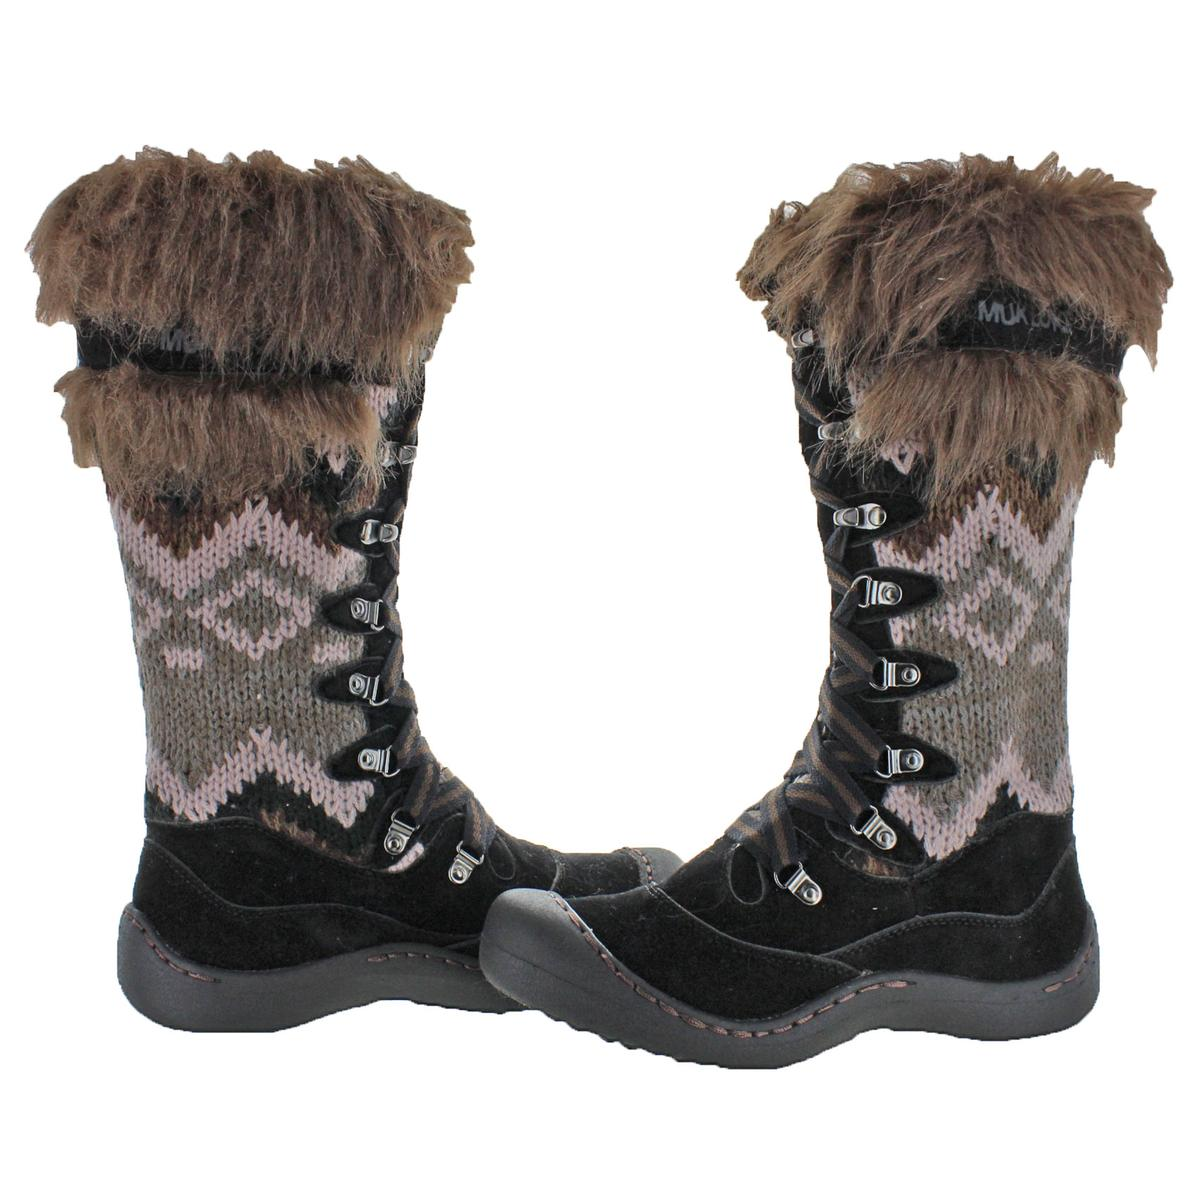 Muk Luks Gwen Women s Faux Suede Water Resistant Tall Winter Snow ... 8781ae9e6e